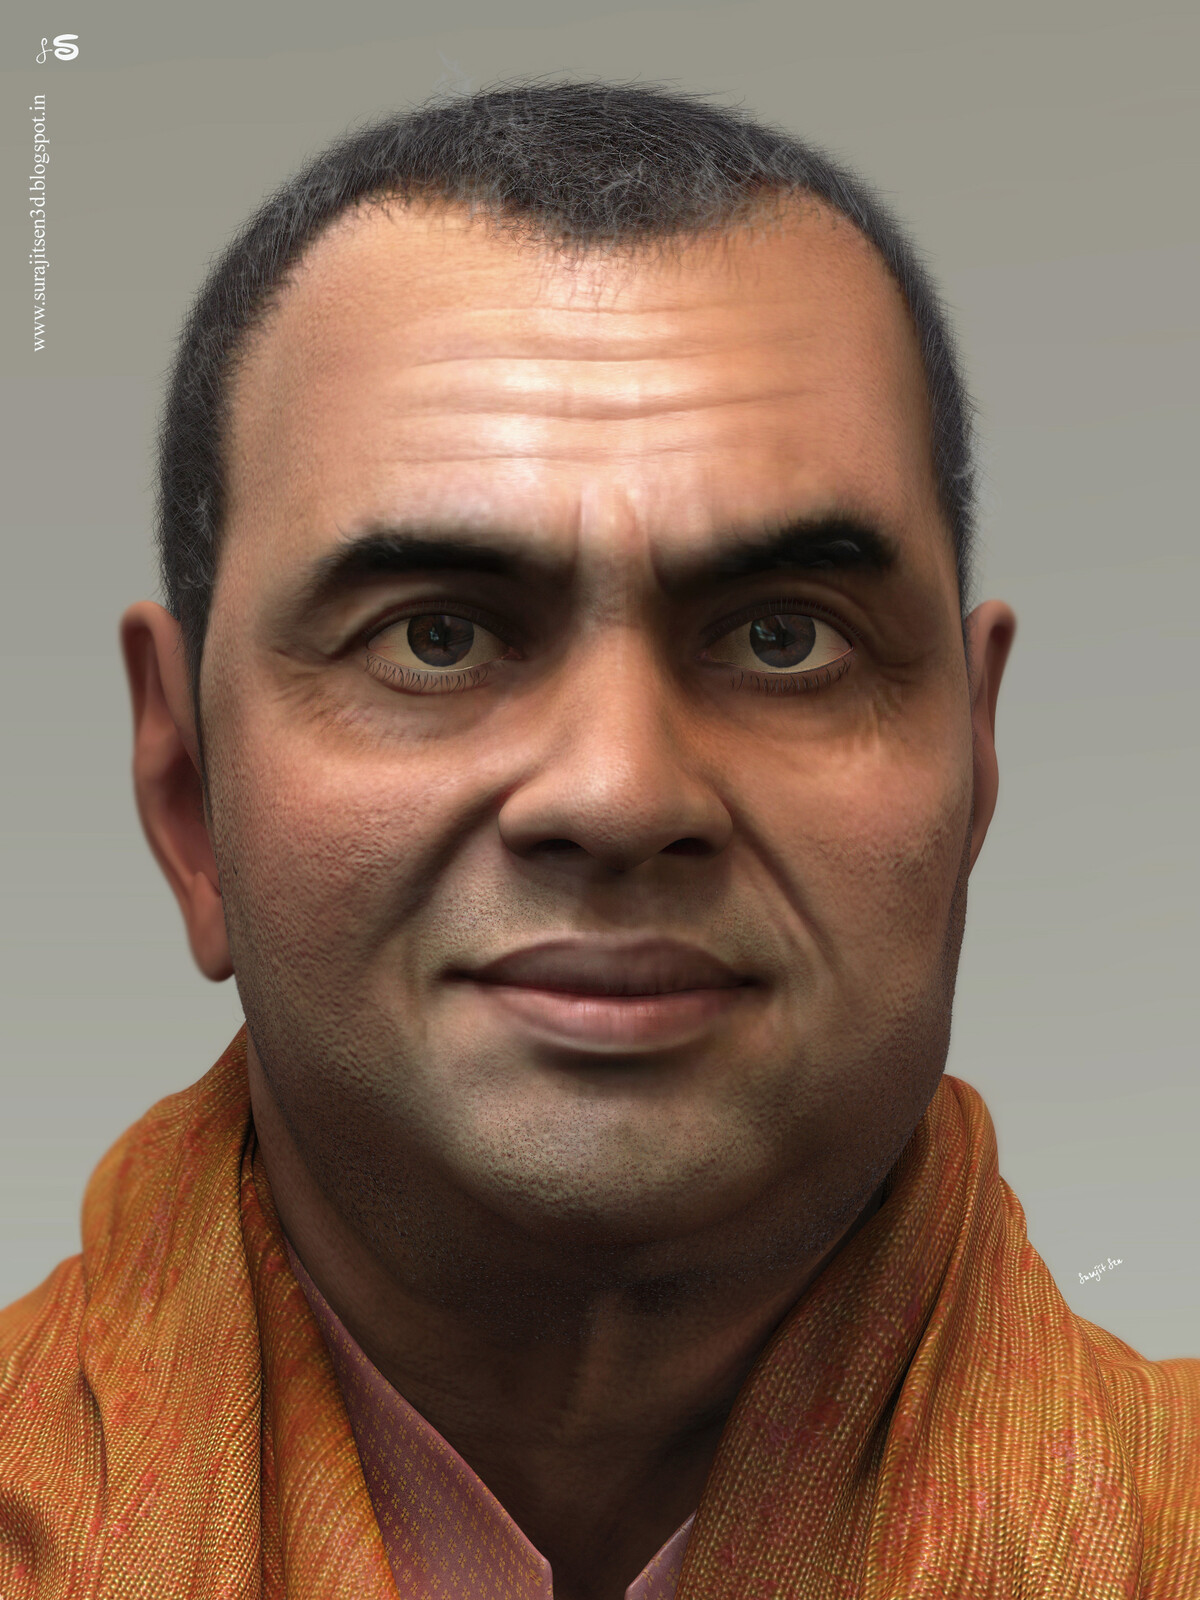 I tried to create a likeness CG Character of my favorite Actor.